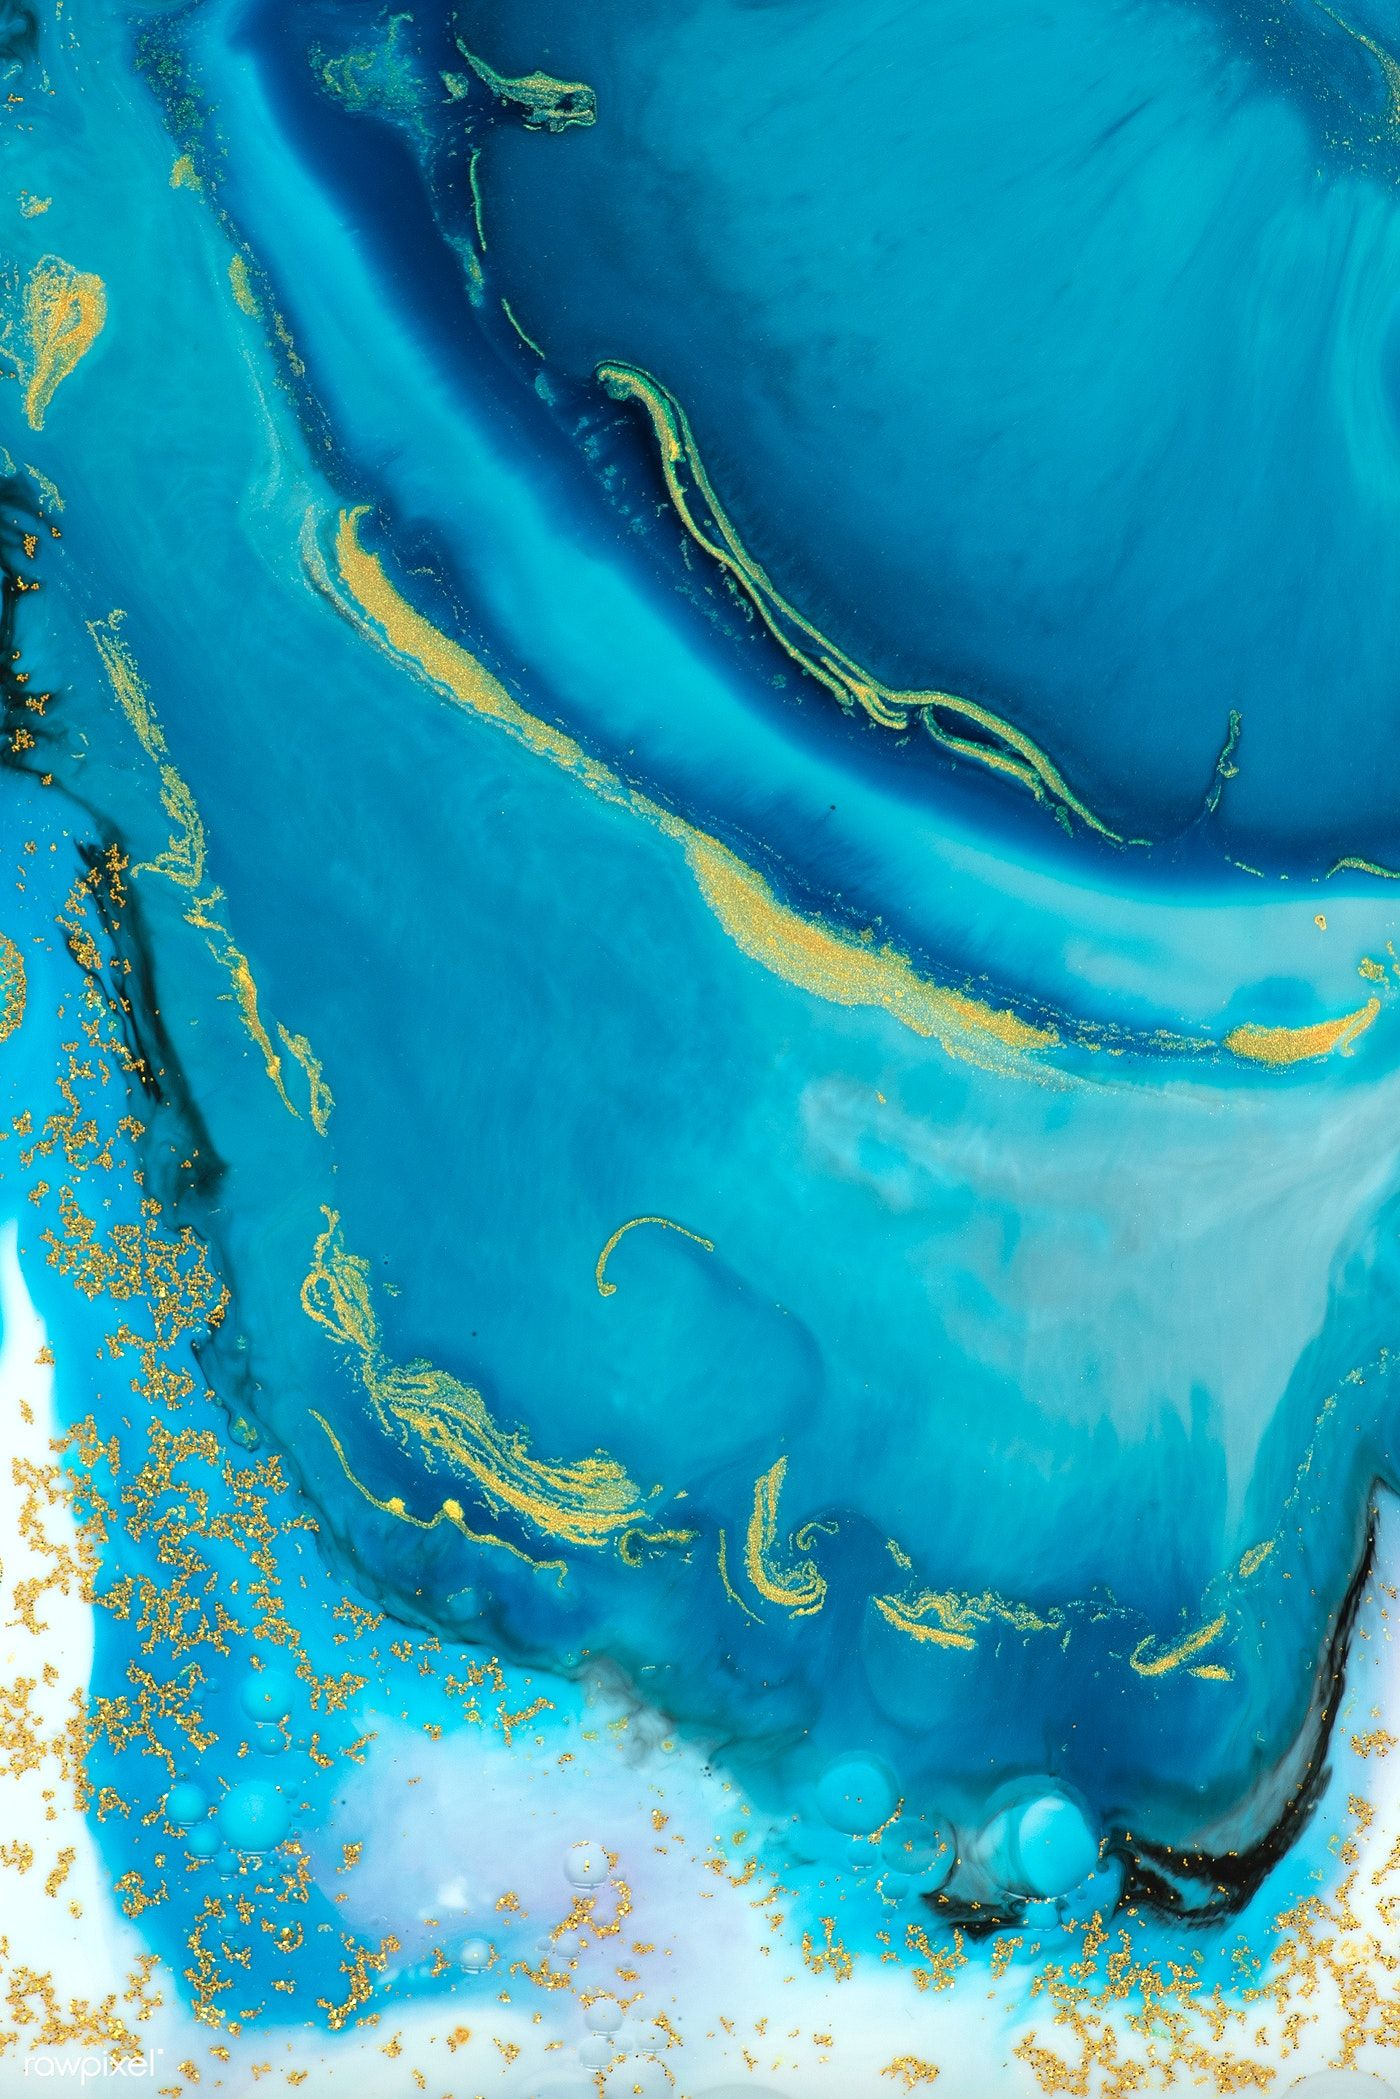 Abstract blue watercolor with gold glitter background